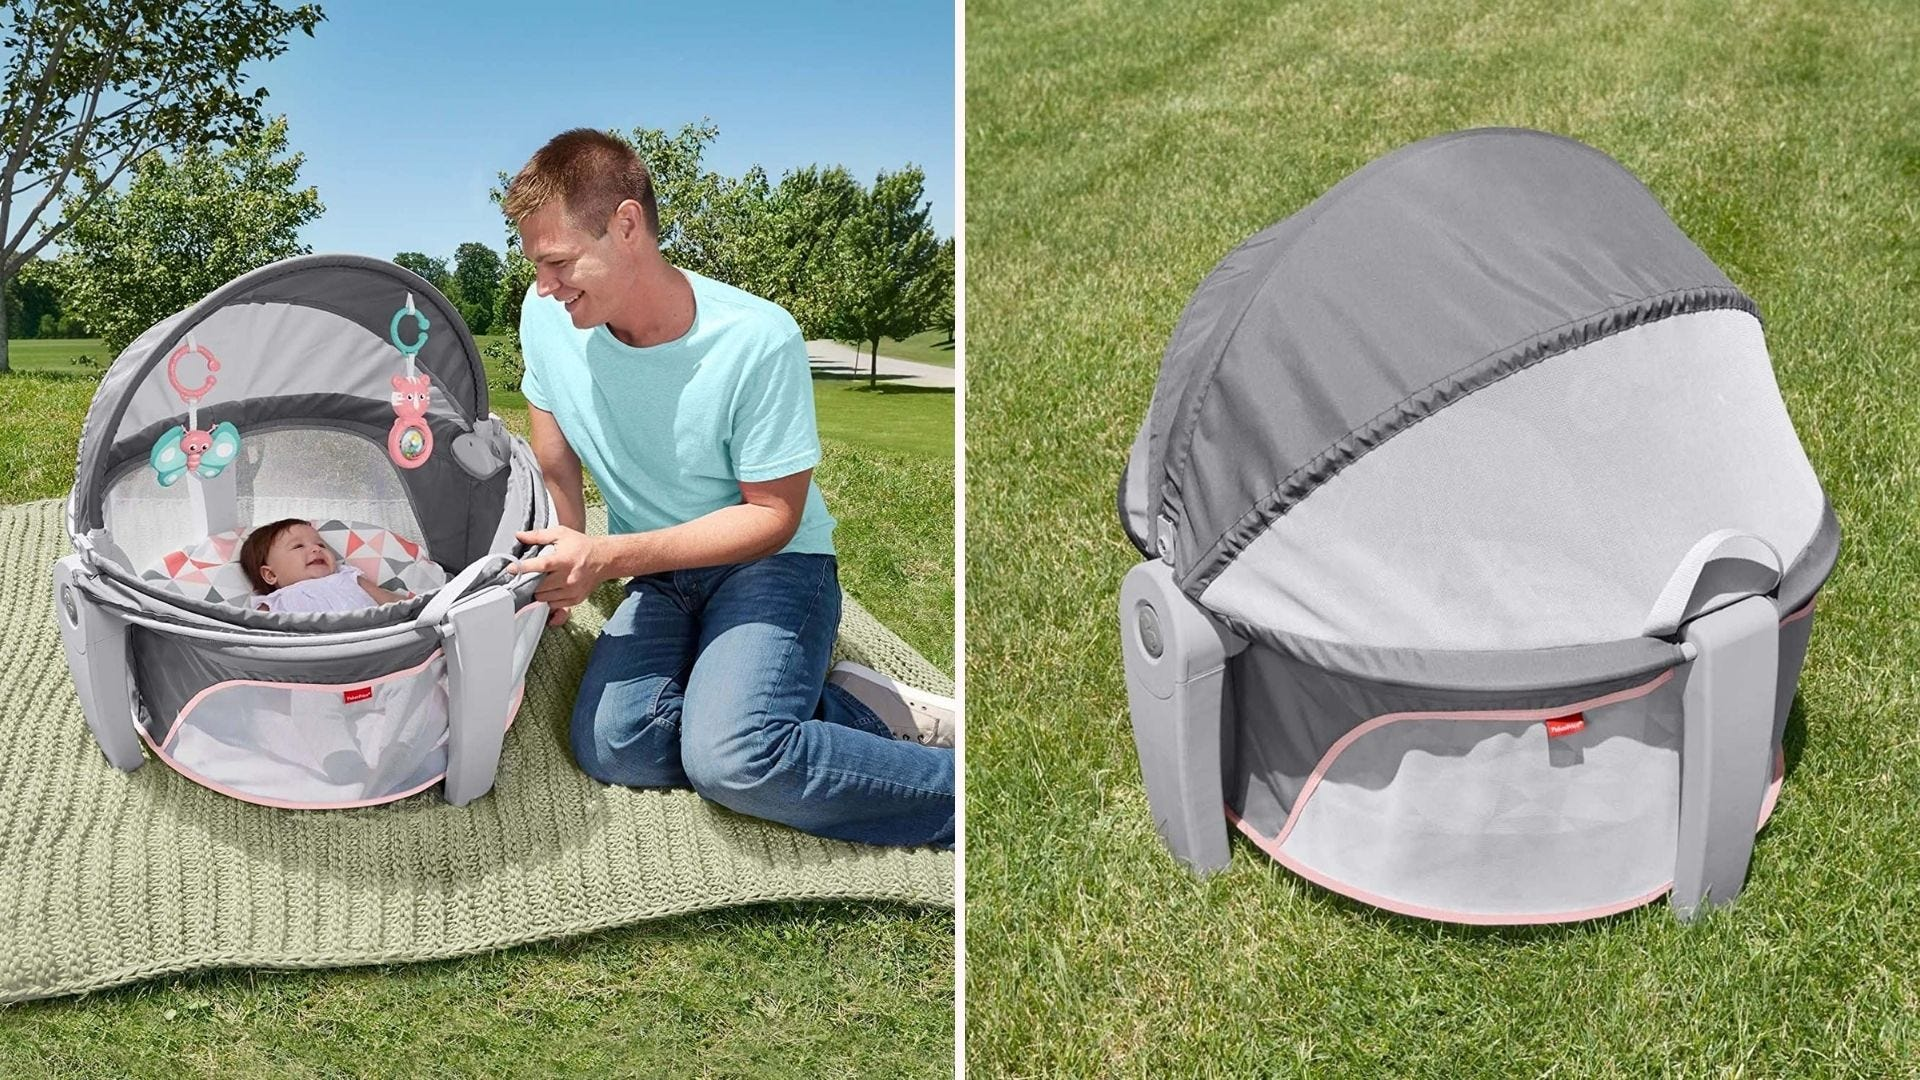 A Fisher-Price baby dome that helps keep small babies contained and safe at the beach.